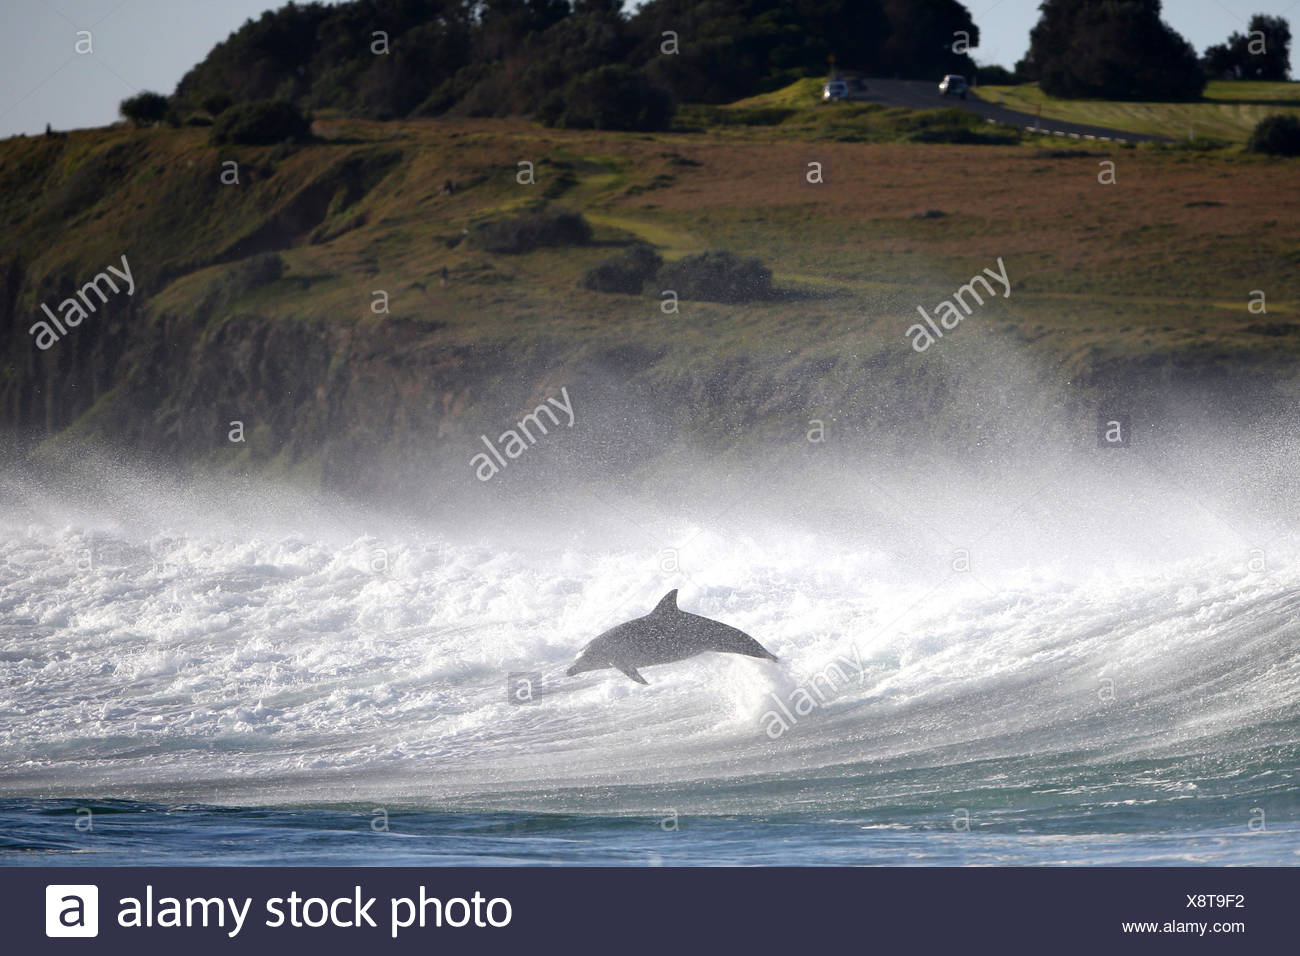 Dolphin leaping out of ocean - Stock Image